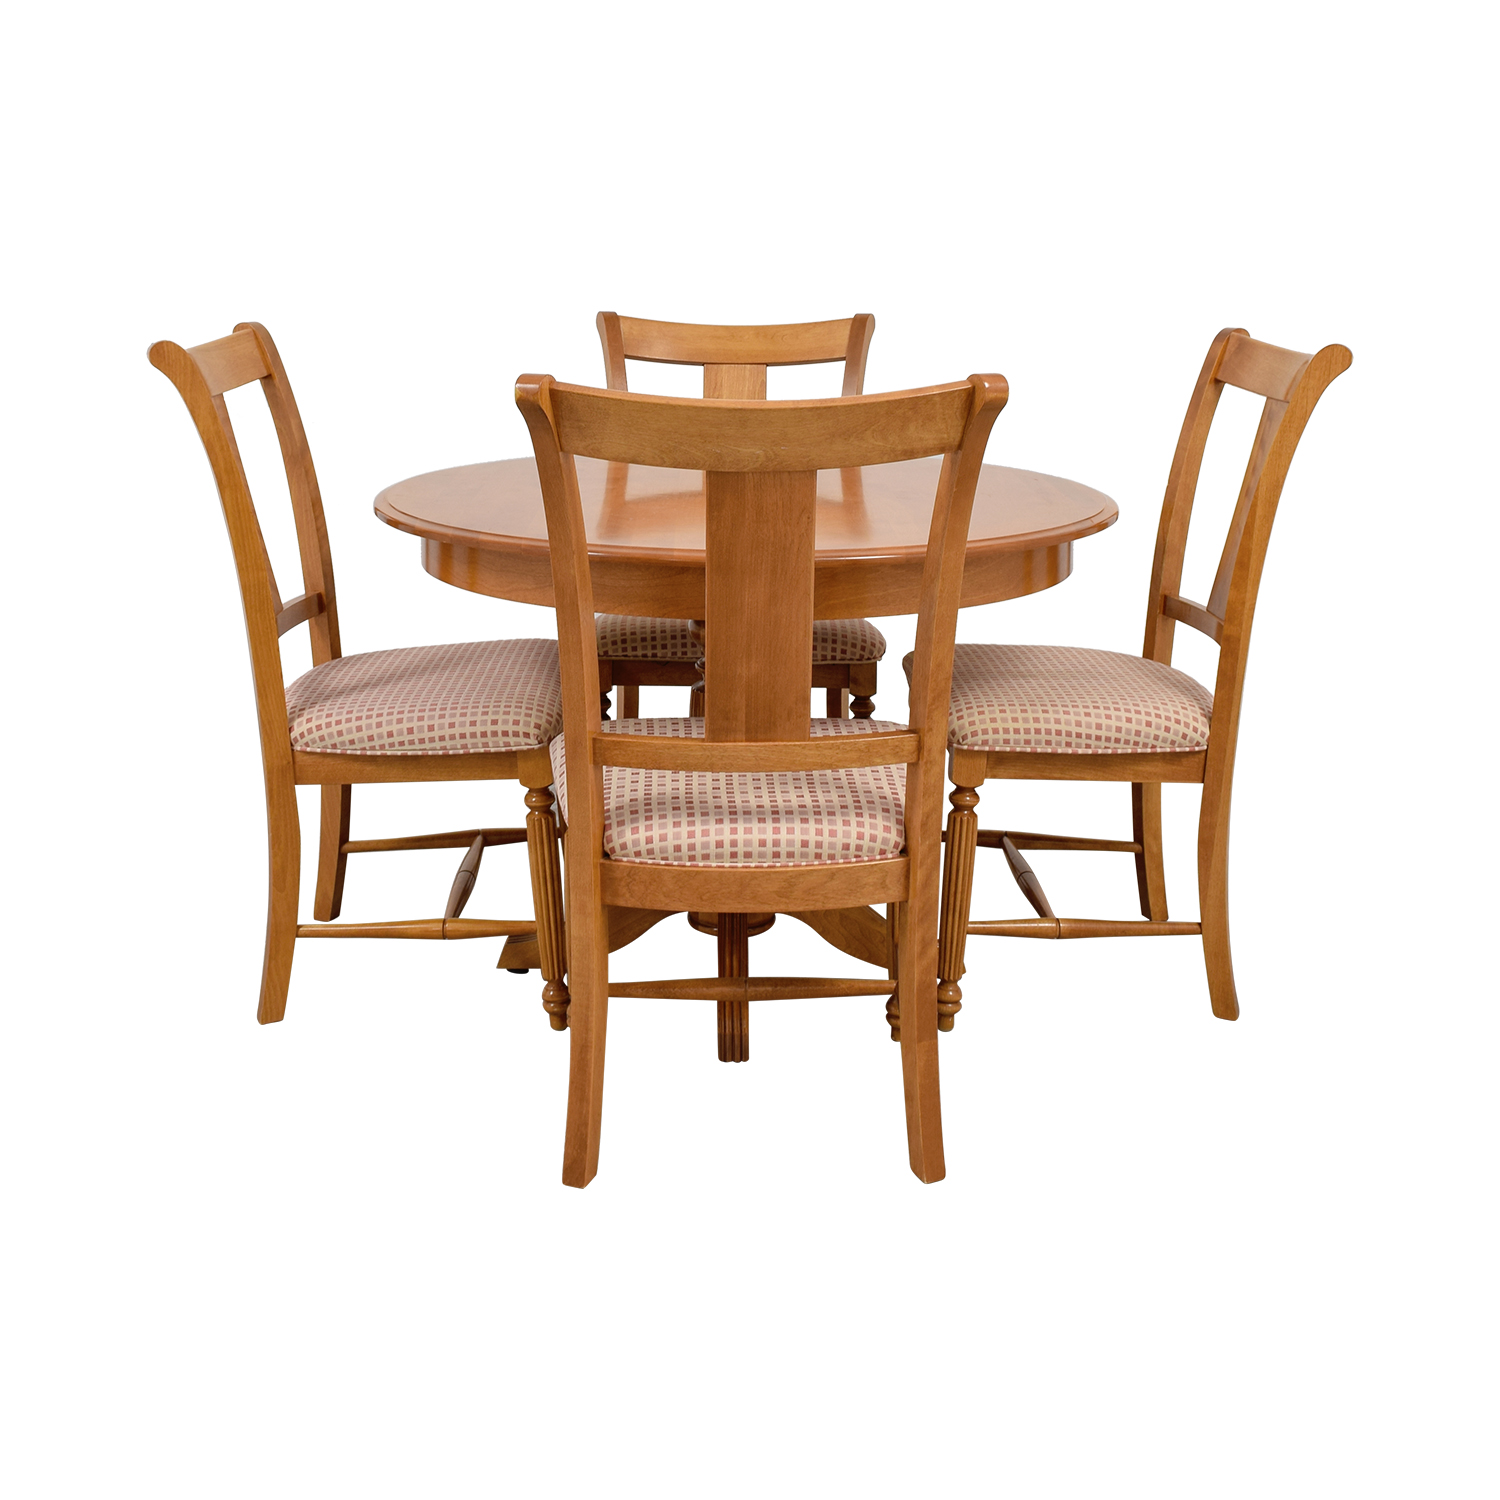 Thomasville Thomasville Wood Extendable Dining Set dimensions